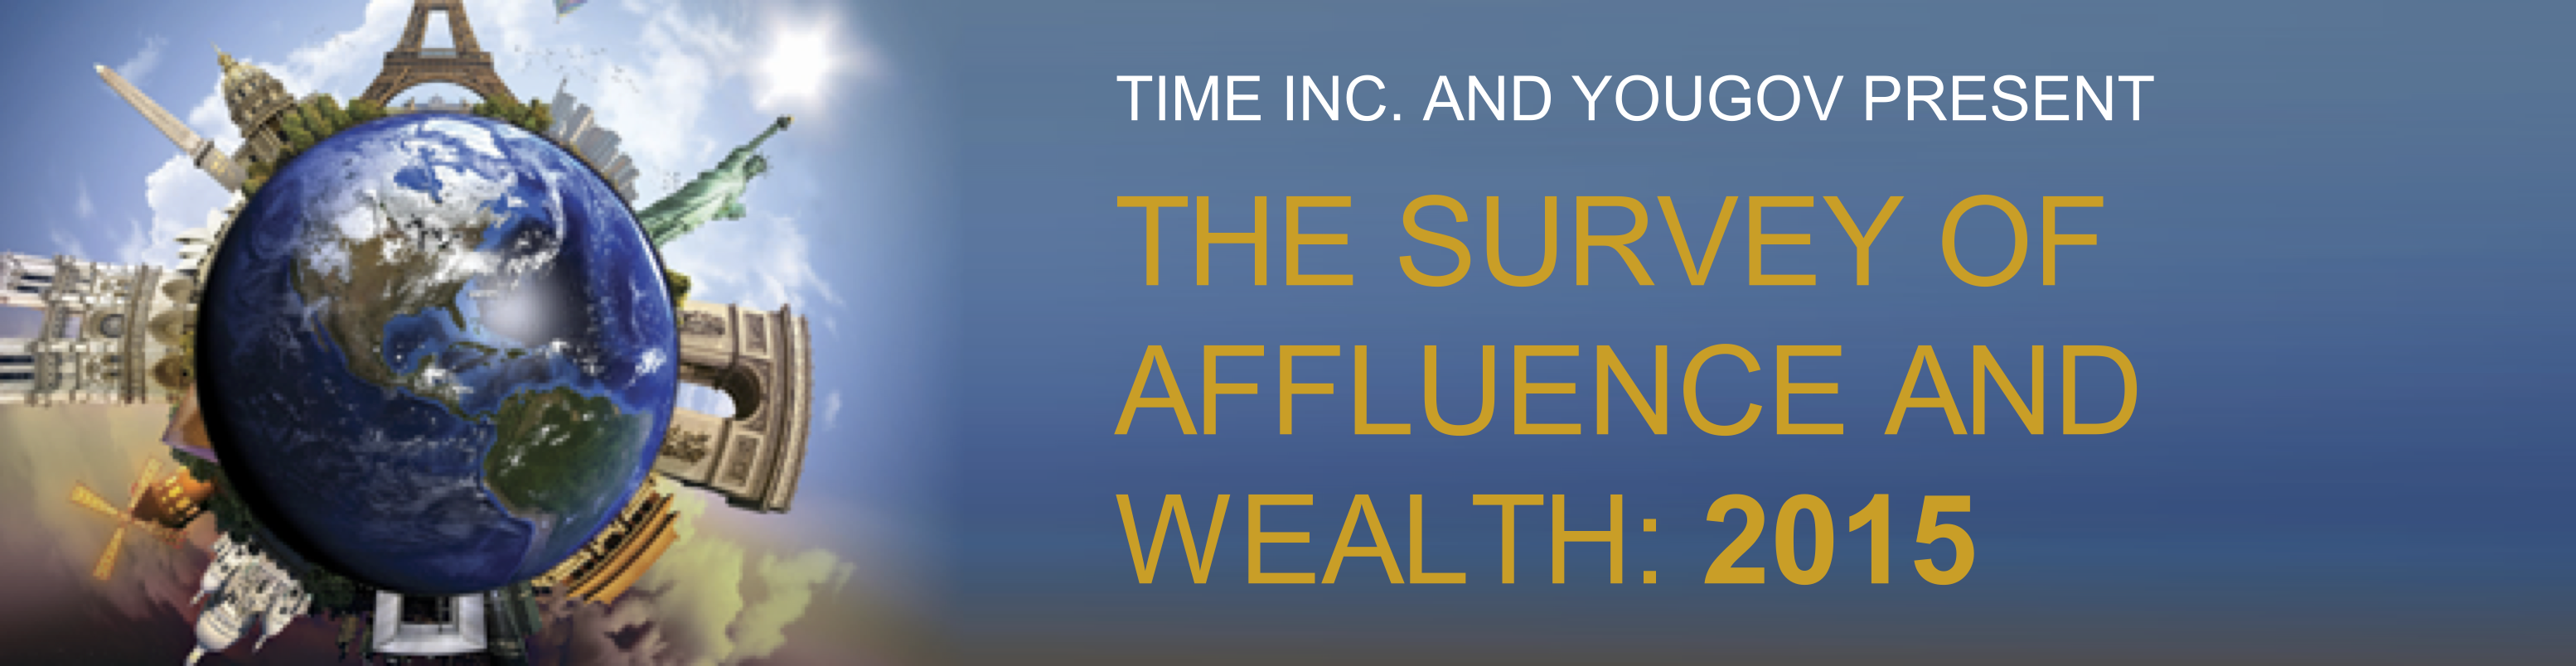 The Survey of Affluence and Wealth in America